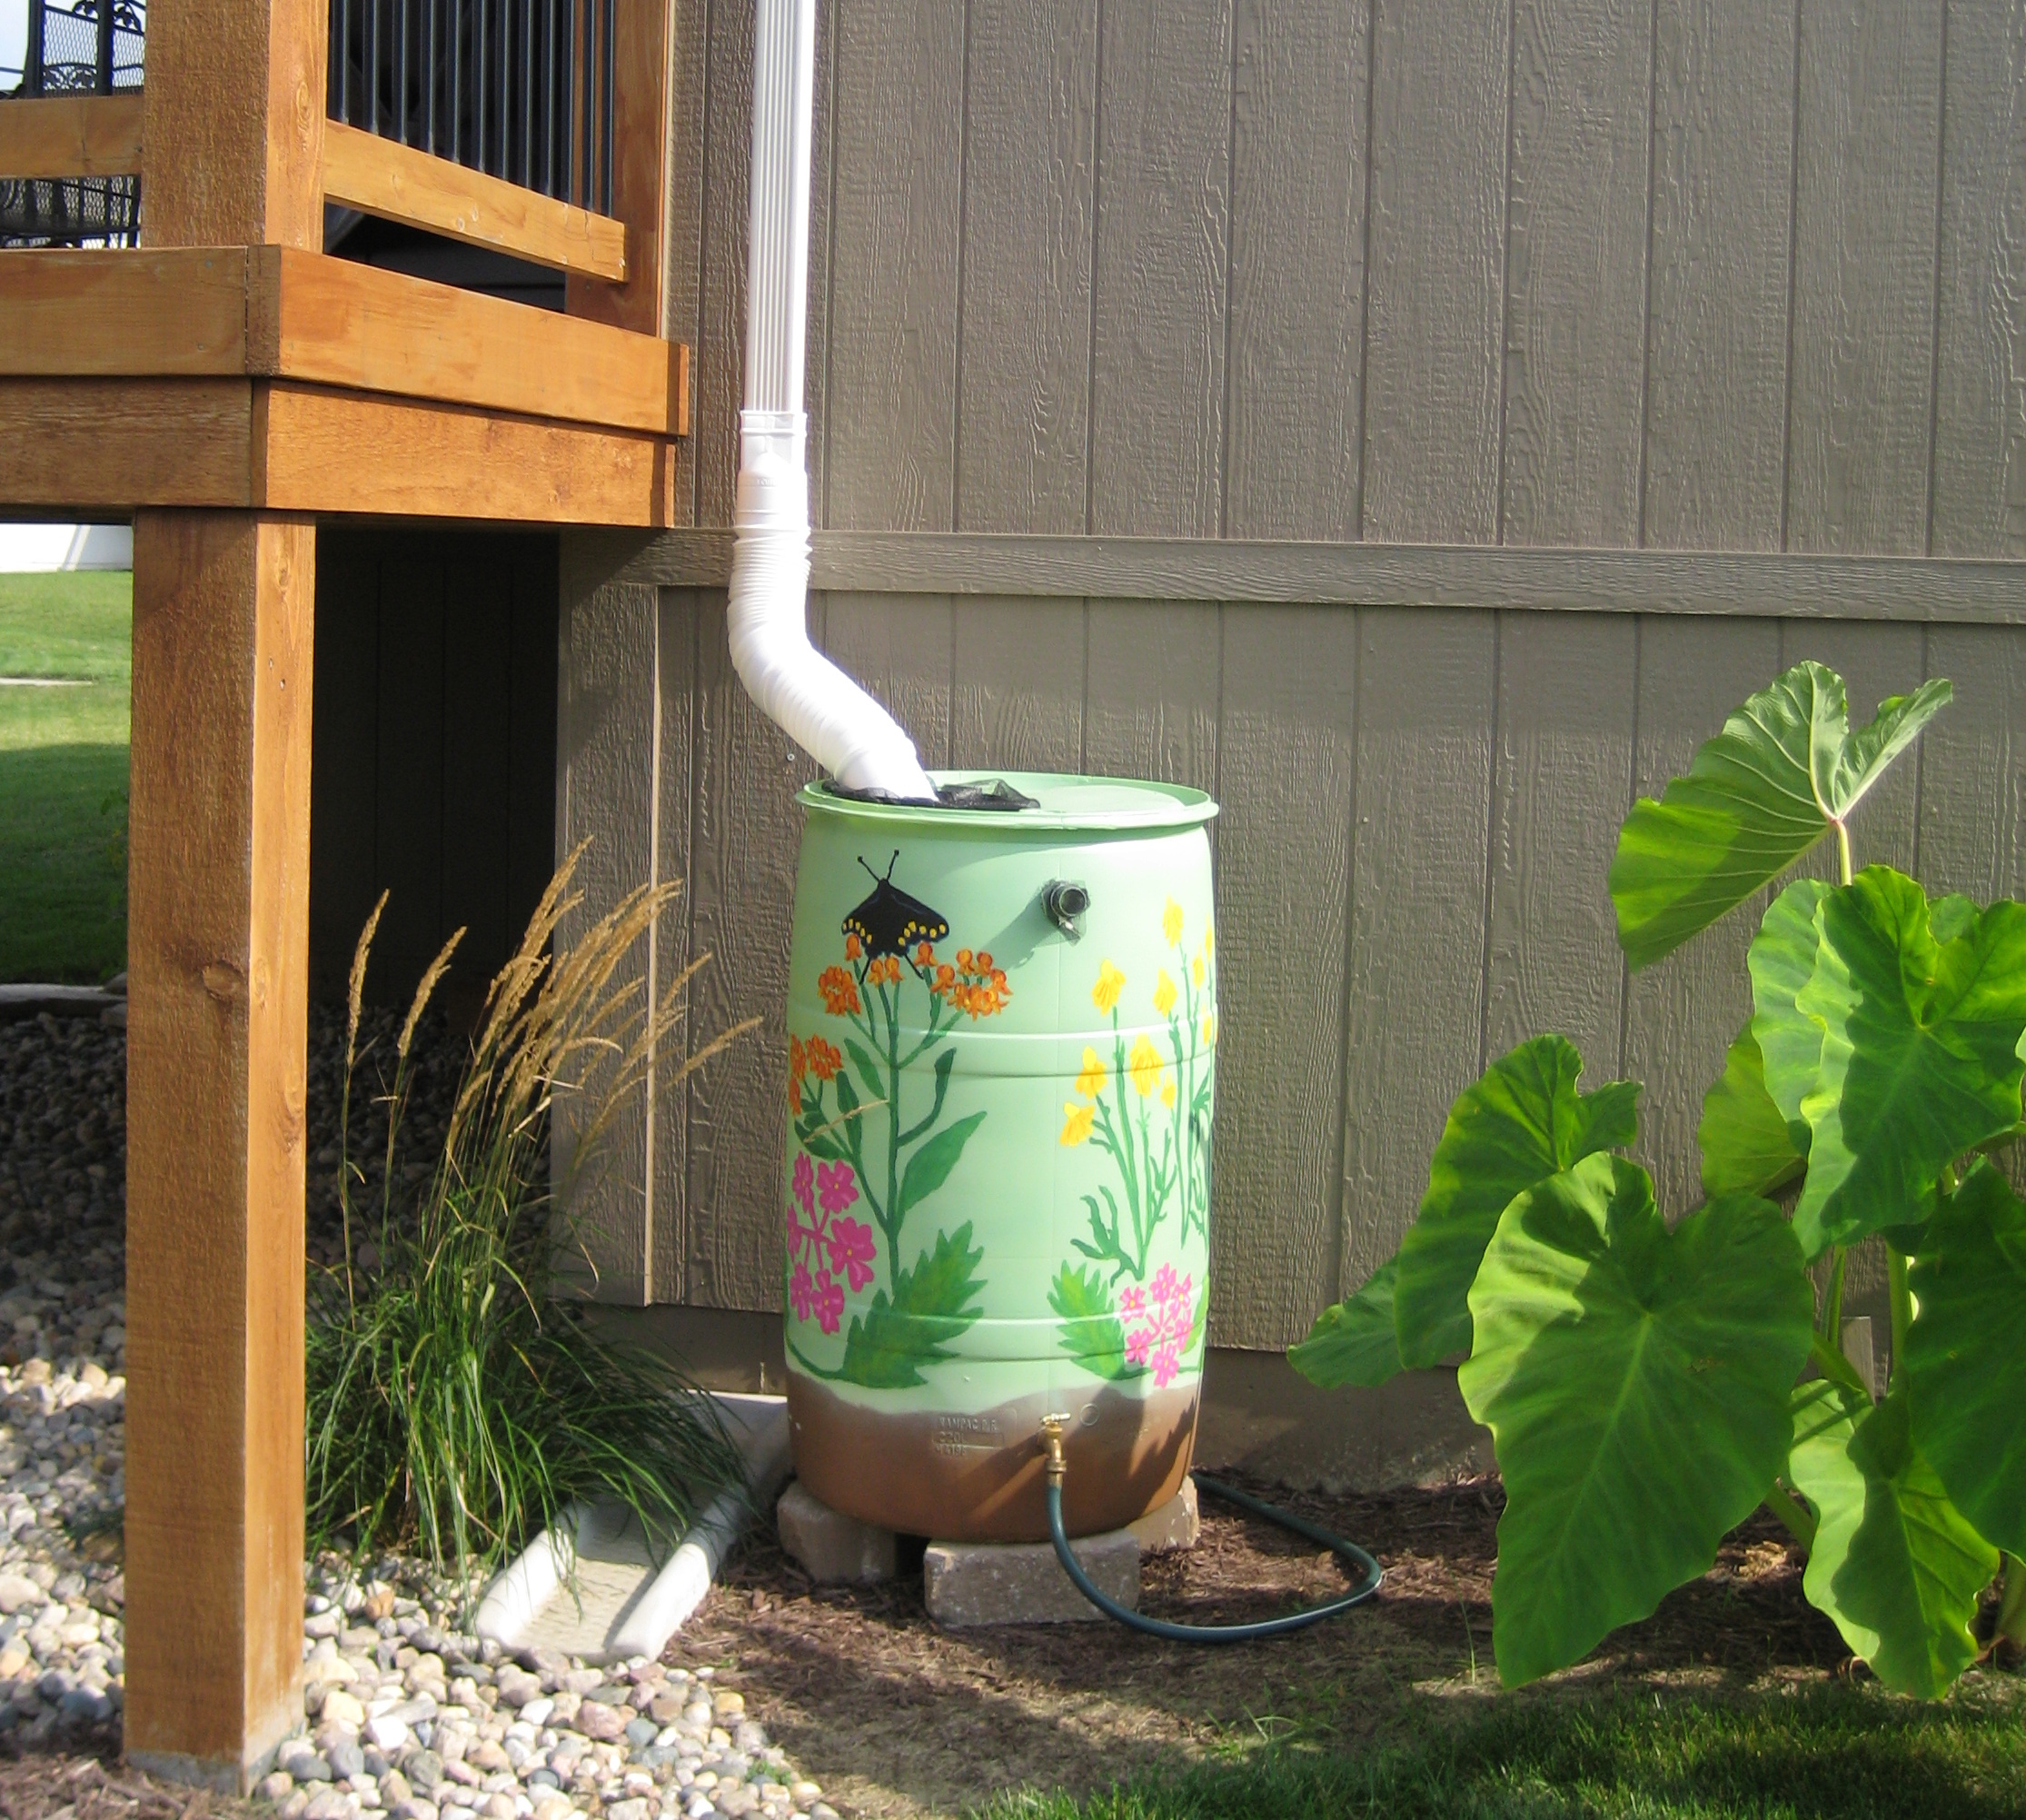 A Decorated Rain Barrel, U201cButterfly Garden,u201d Is Connected To A Downspout In